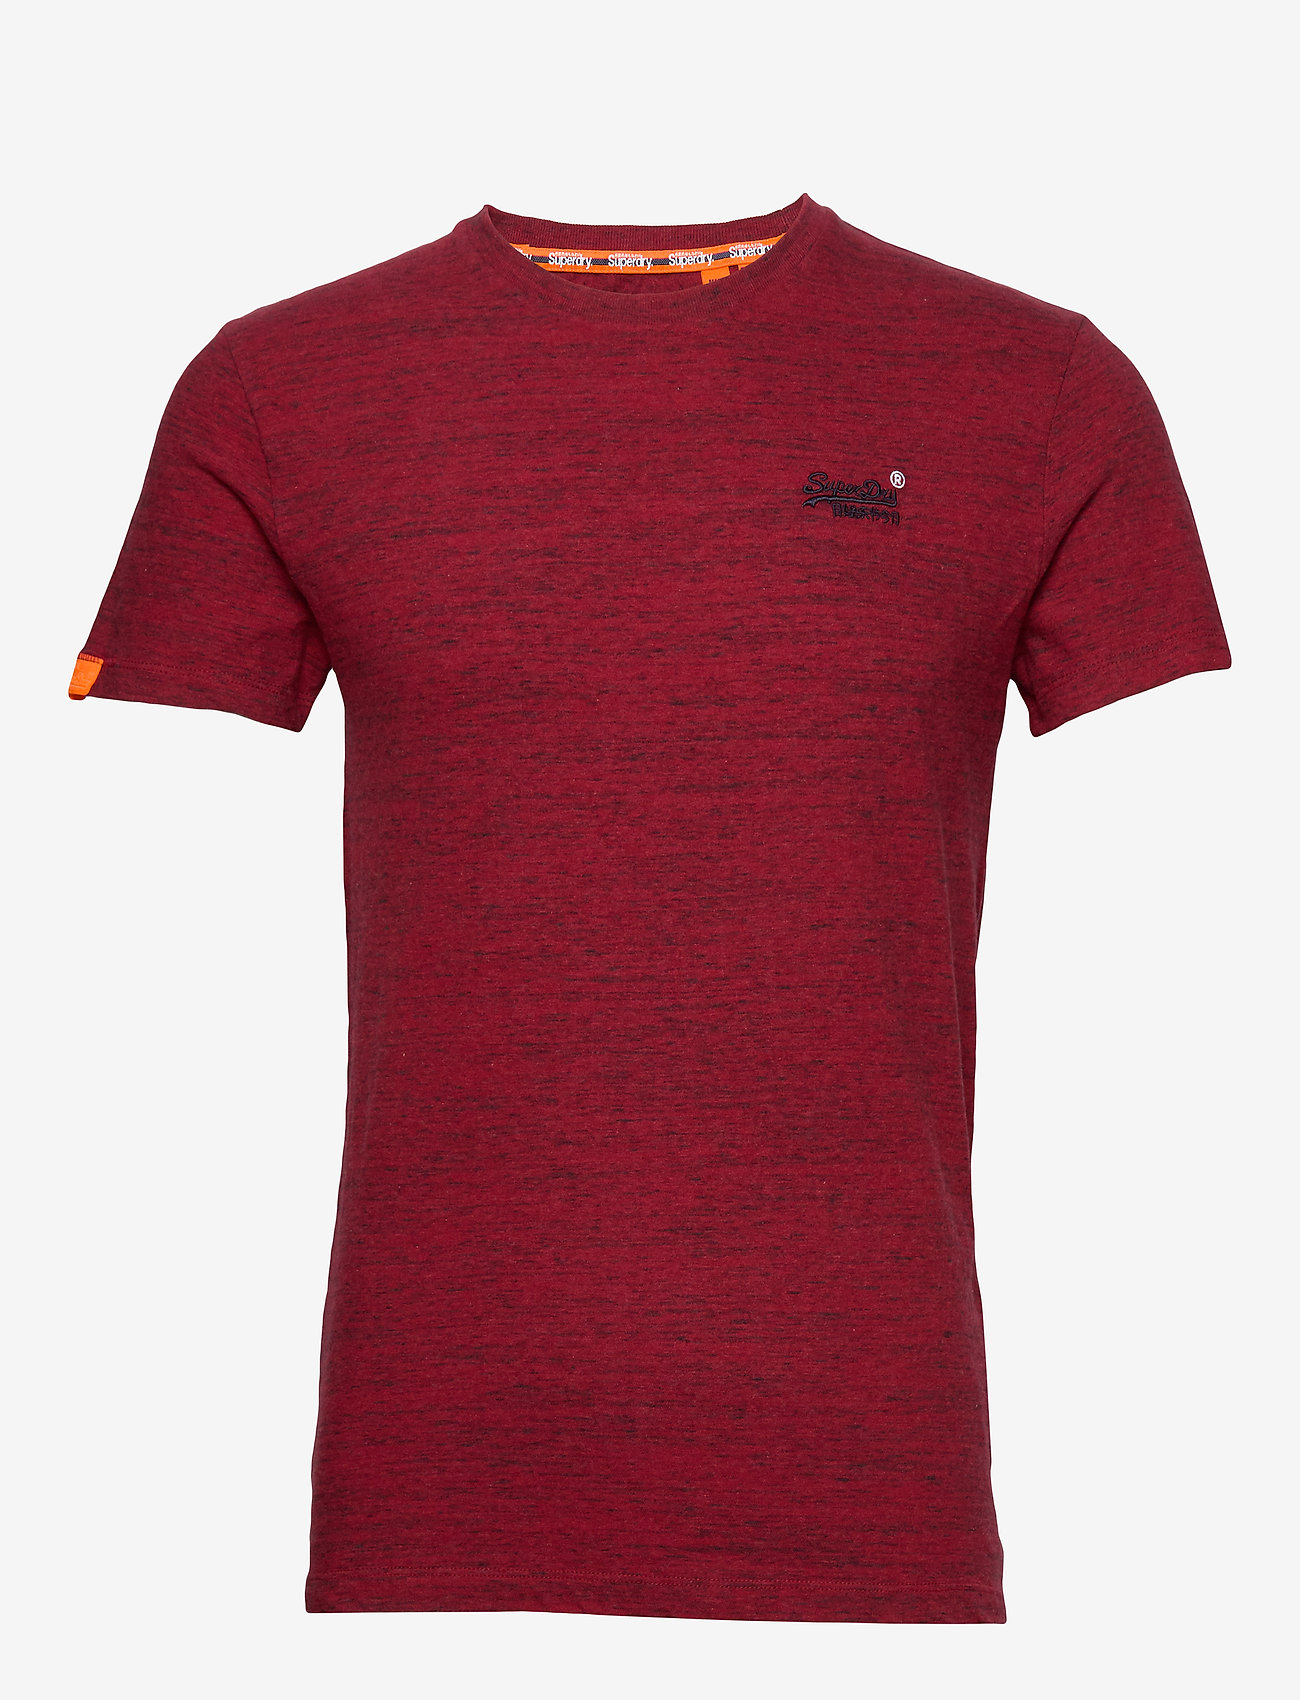 Superdry OL VINTAGE EMBROIDERY TEE - T-shirts DESERT RED GRIT gsehFImg